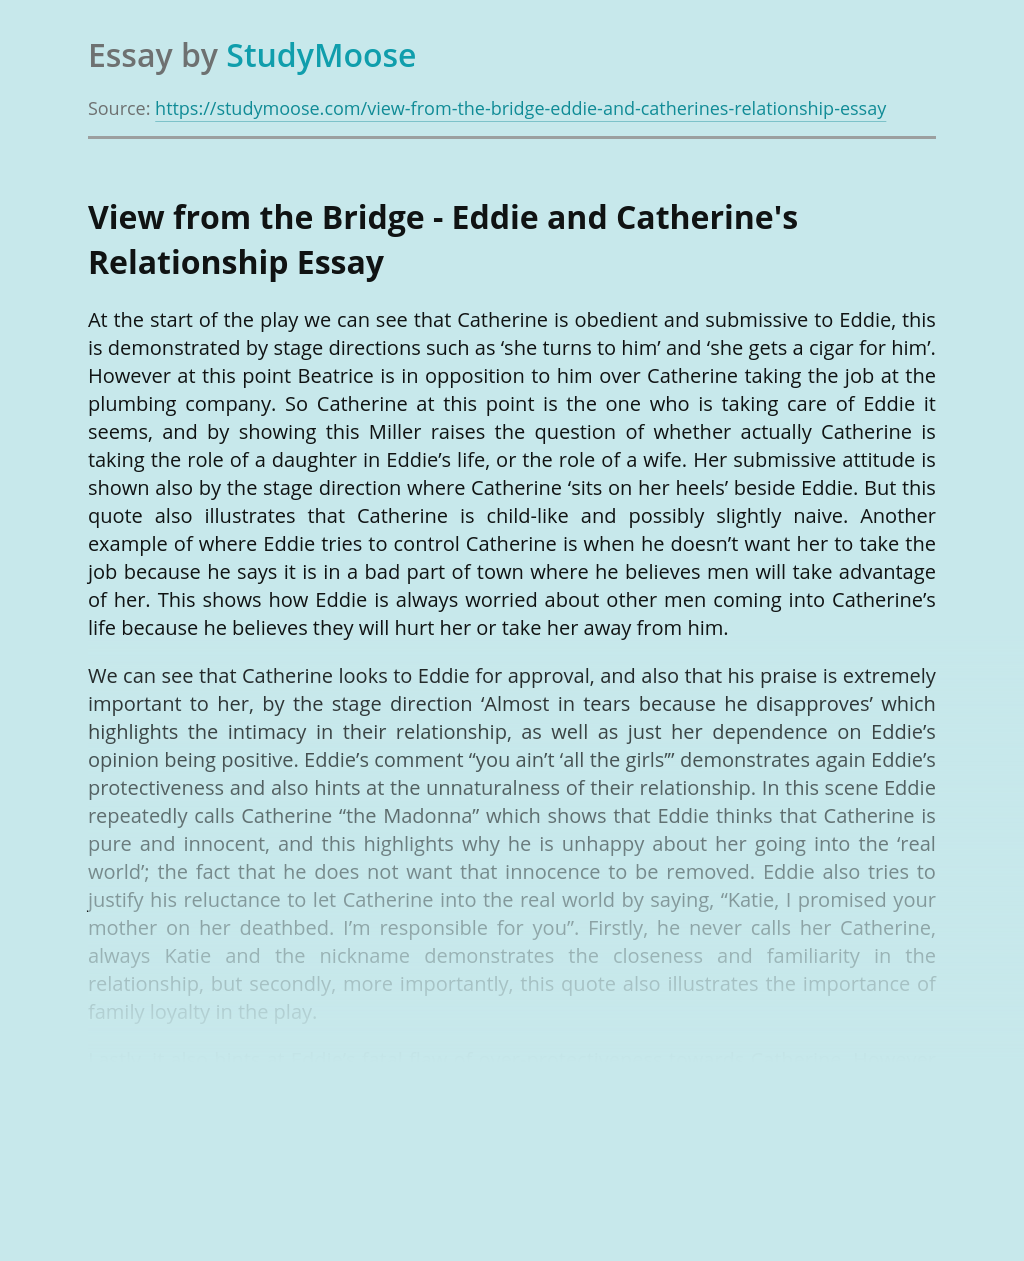 View from the Bridge - Eddie and Catherine's Relationship